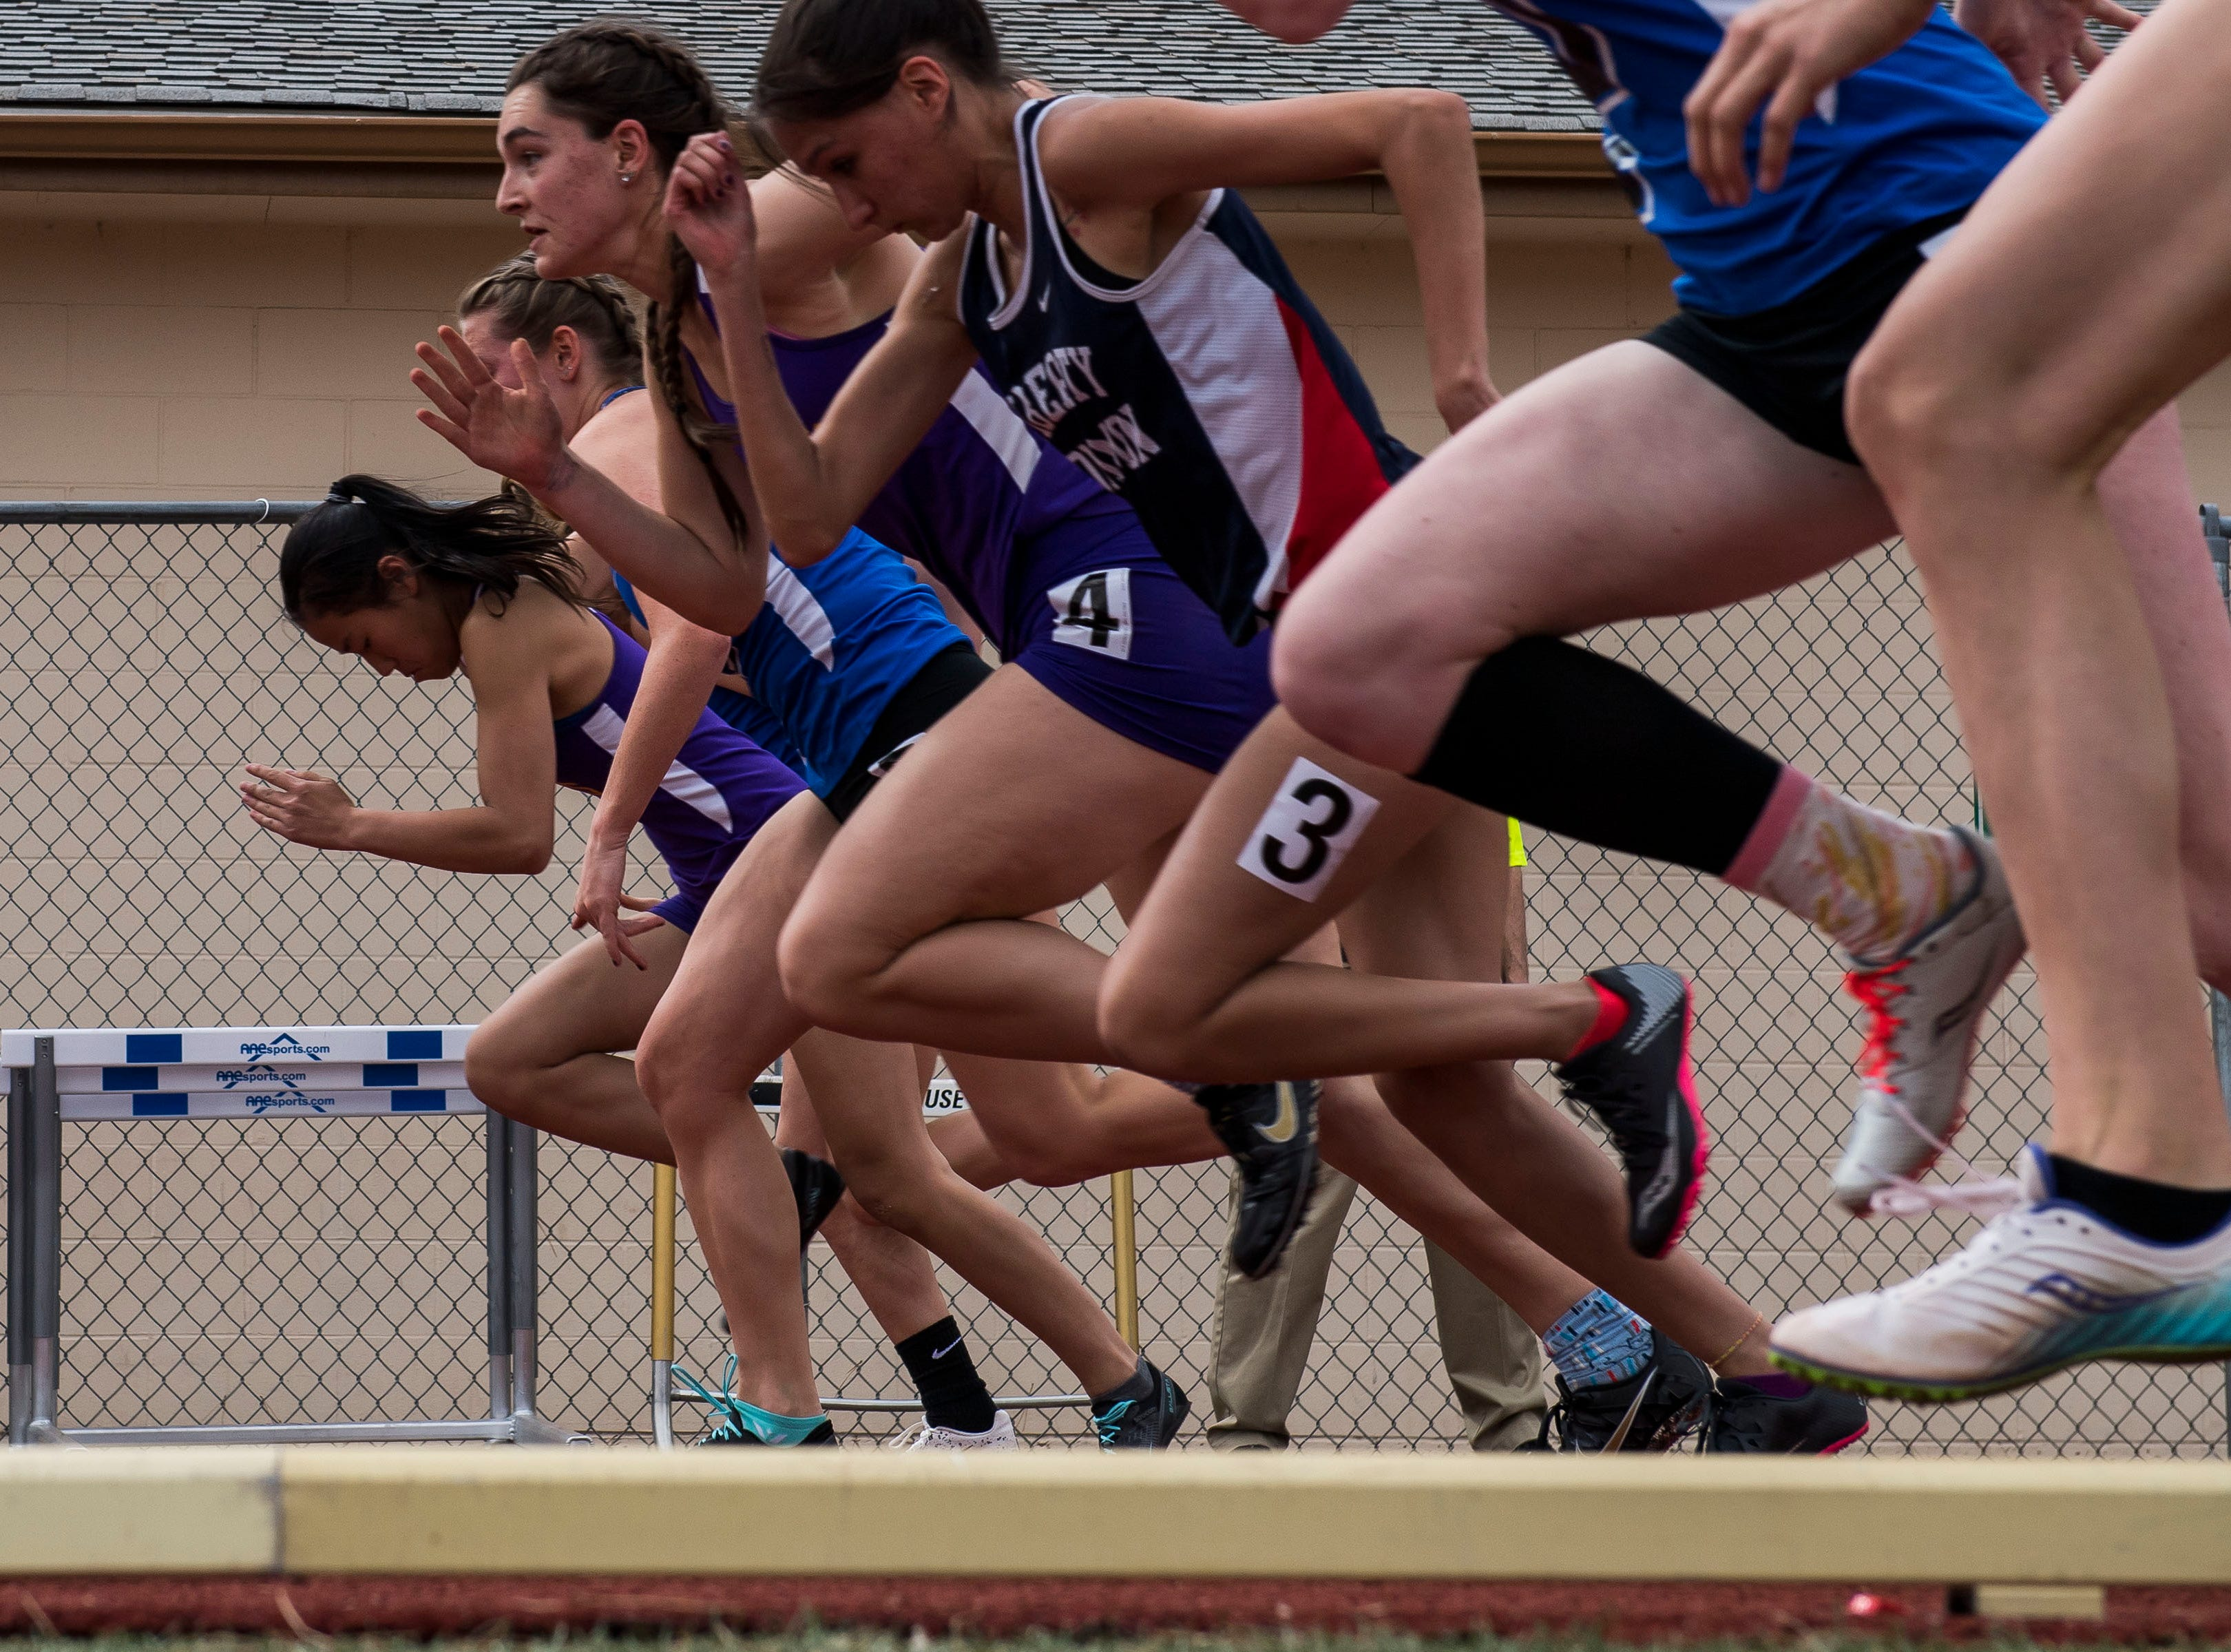 Local girls compete in the girls 100-meter dash during the Randy Yaussi City Track Championships on Tuesday, April 9, 2019, at French Field in Fort Collins, Colo.